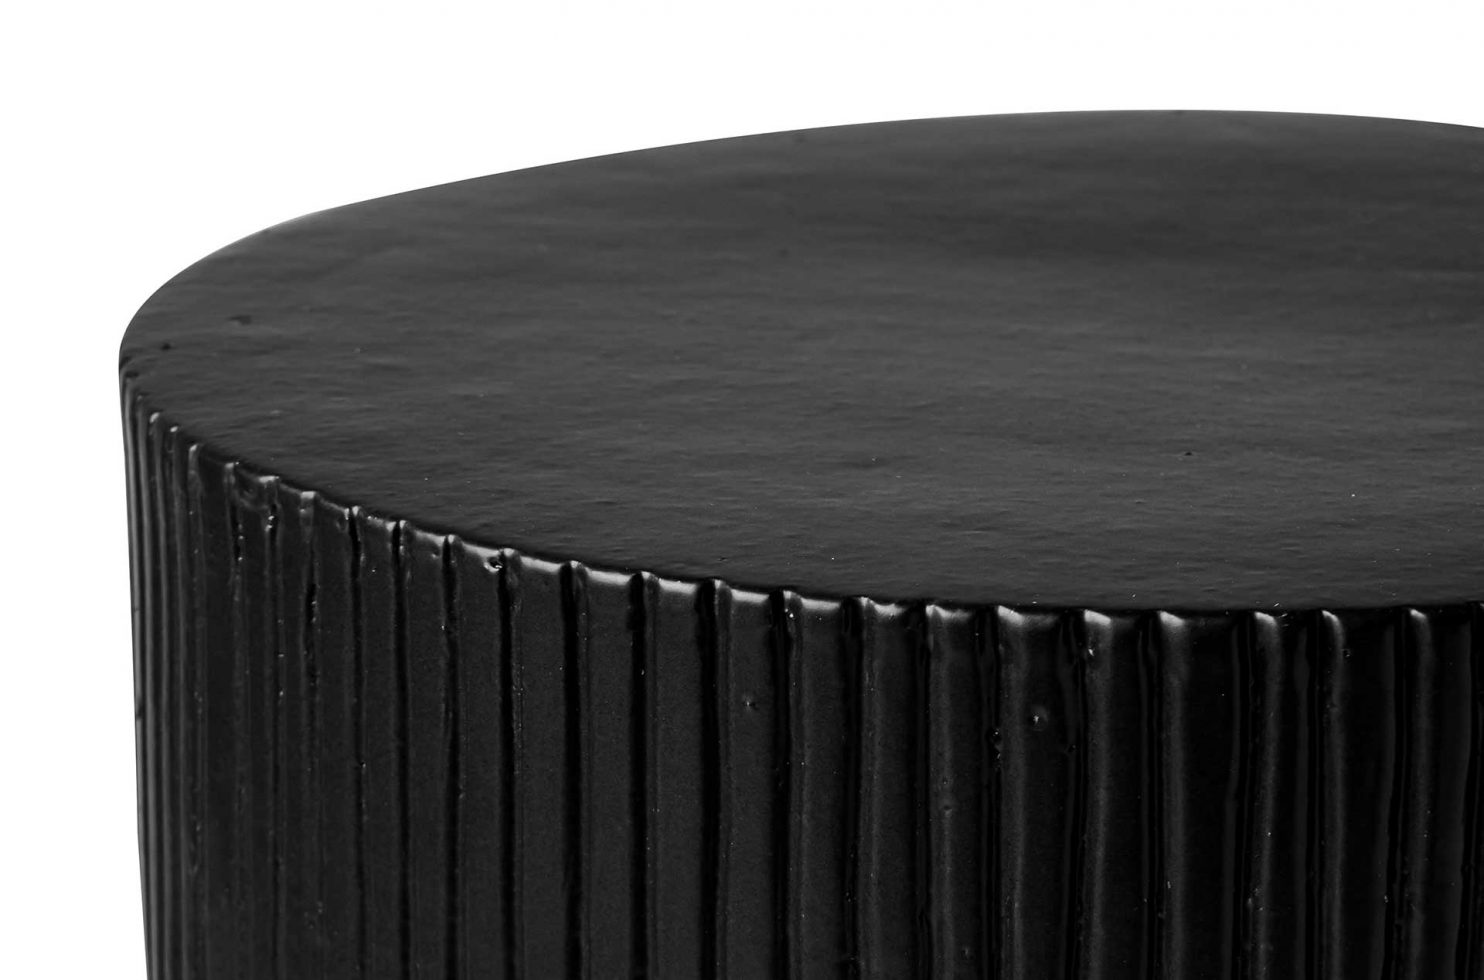 prov cer serenity textured side table 16in C30802032 coal dtl4 web